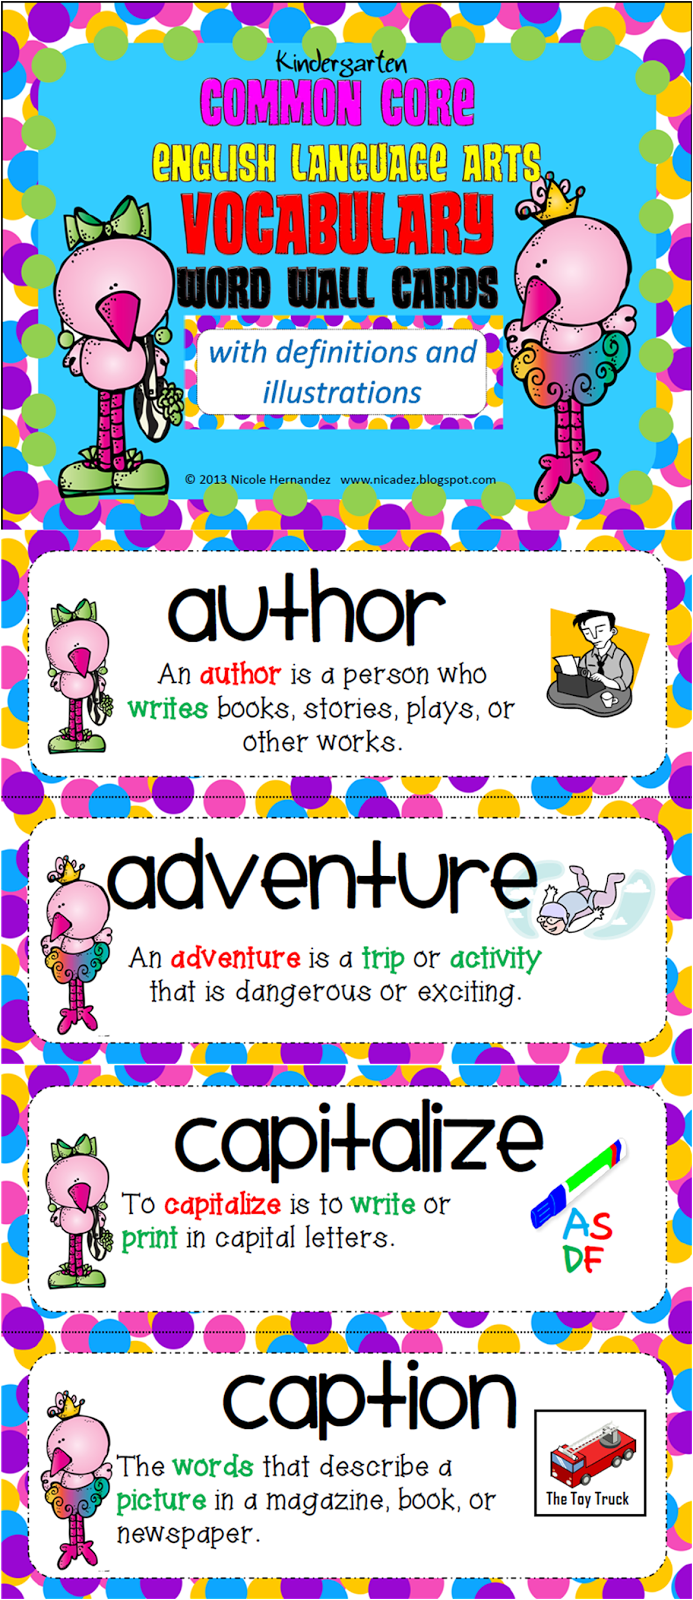 http://www.teacherspayteachers.com/Product/Kindergarten-Common-Core-ELA-Illustrated-Vocabulary-Cards-with-Definitions-730785